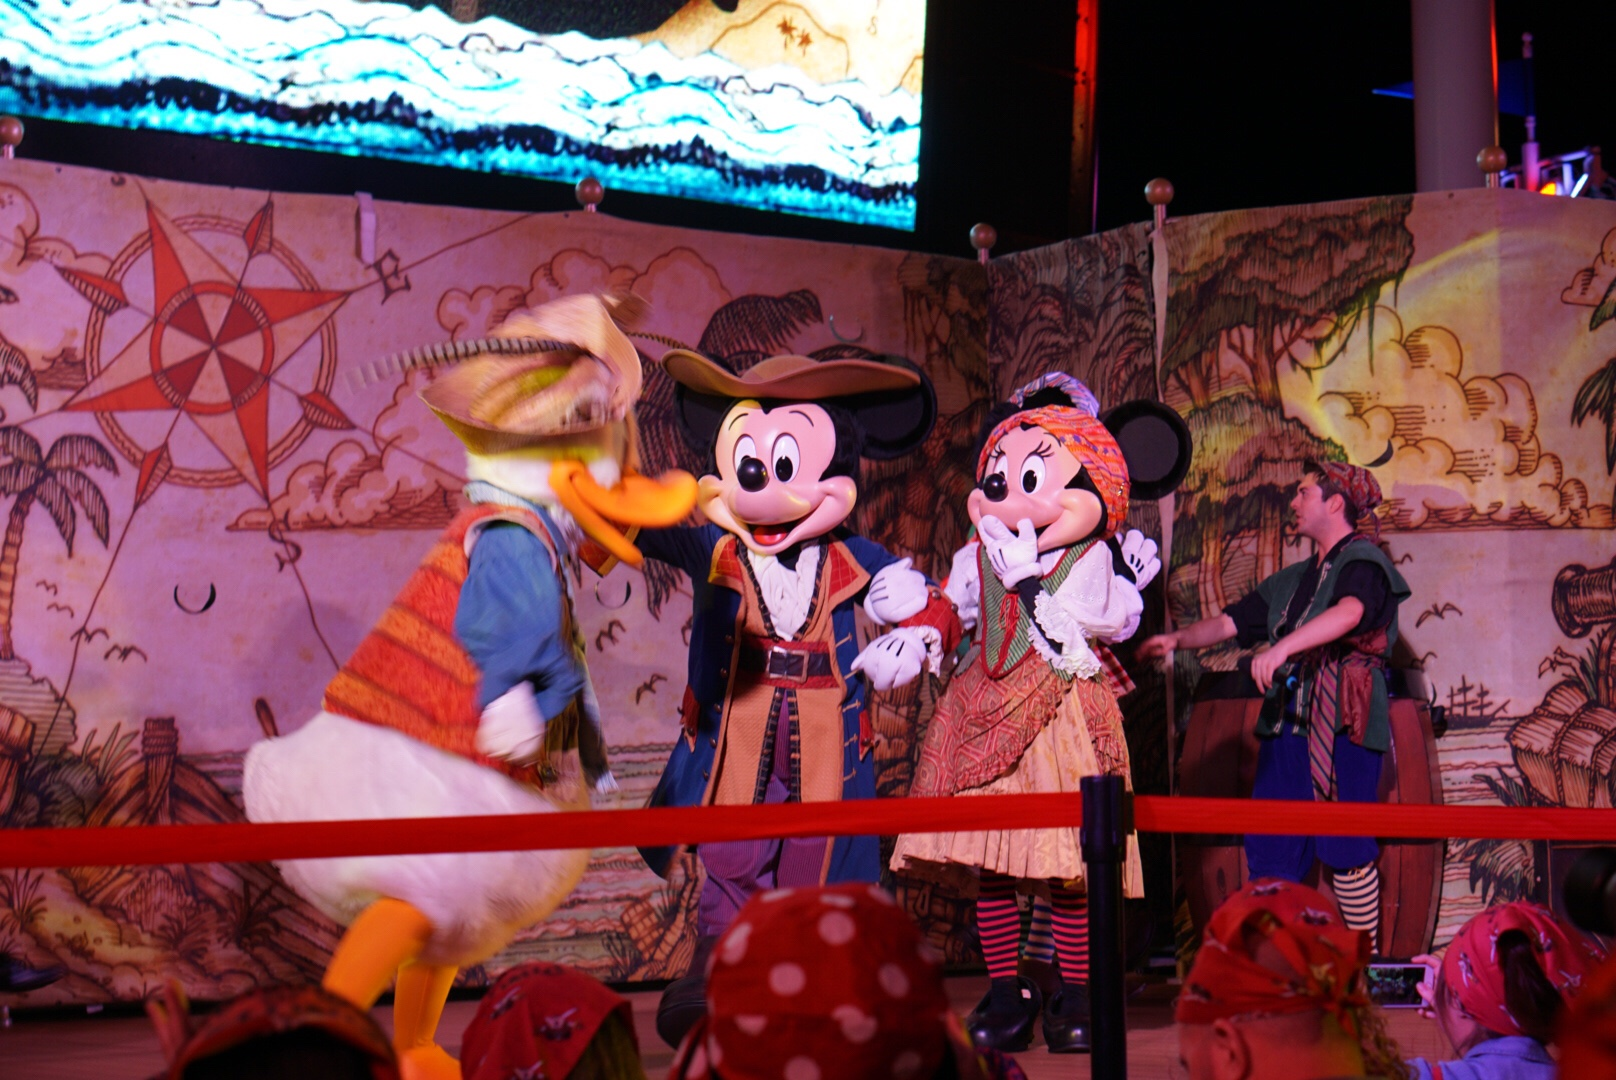 Disney Dream Cruise Ship - Disney Cruise Pirate Night - DisneySMMC Disney Social Media Moms Celebration 2018 via Misty Nelson #disneysmmc #disneymoms